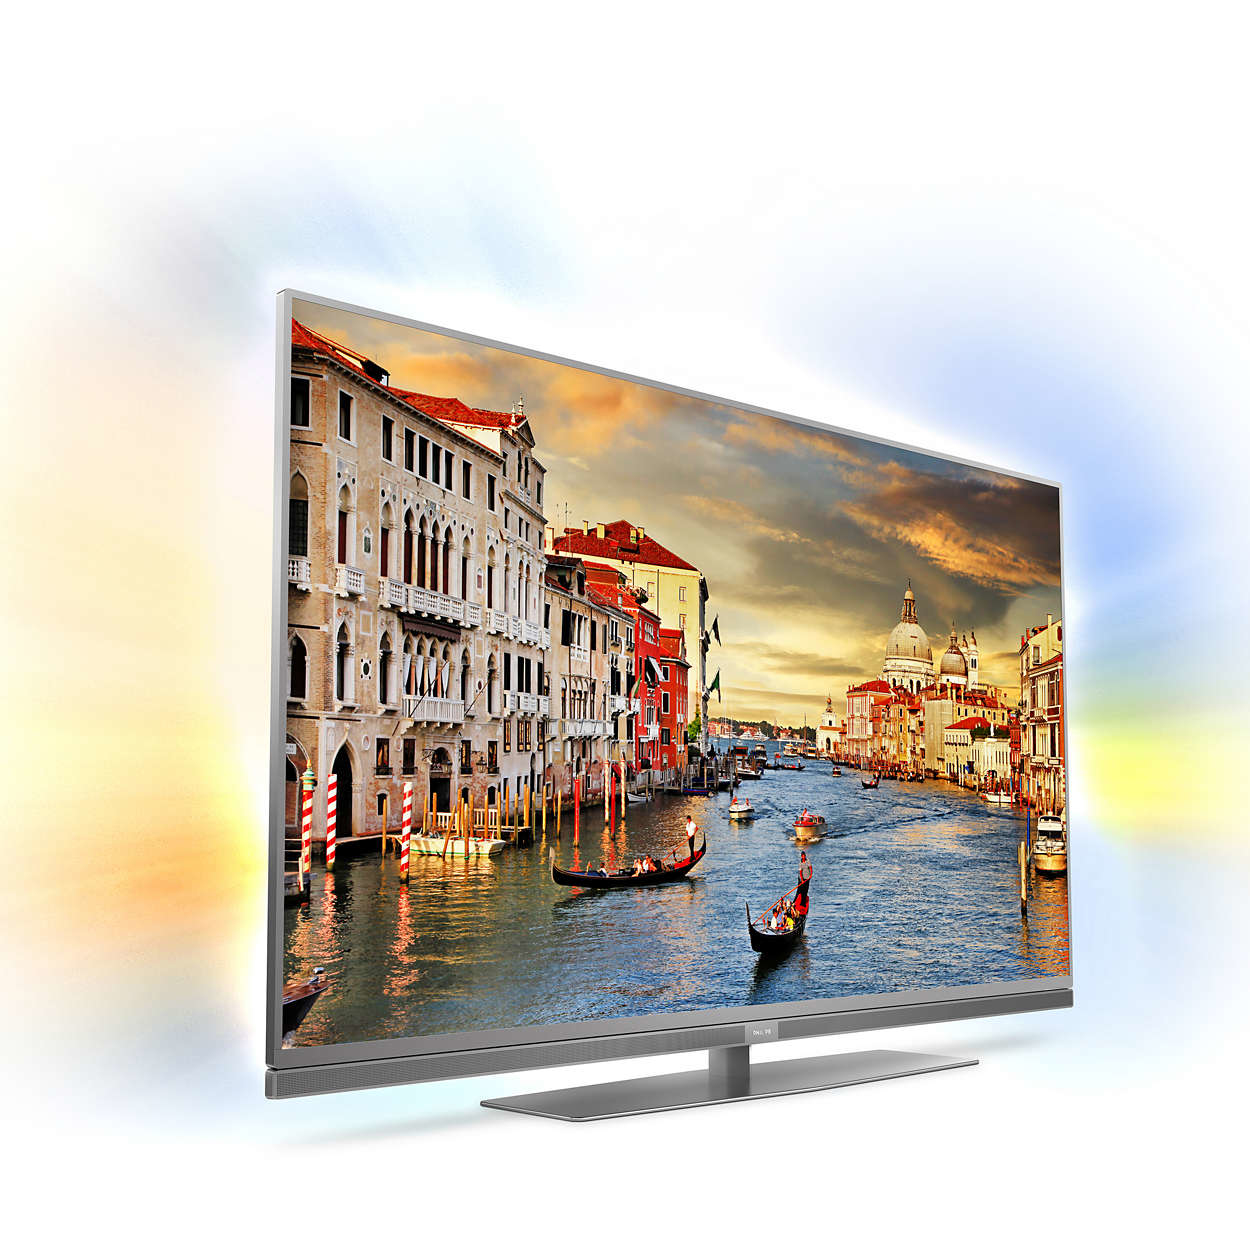 "Philips 49HFL7011T/12 hospitality TV 124.5 cm (49"") 4K Ultra HD 400 cd/m² Gray Smart TV 45 W A"